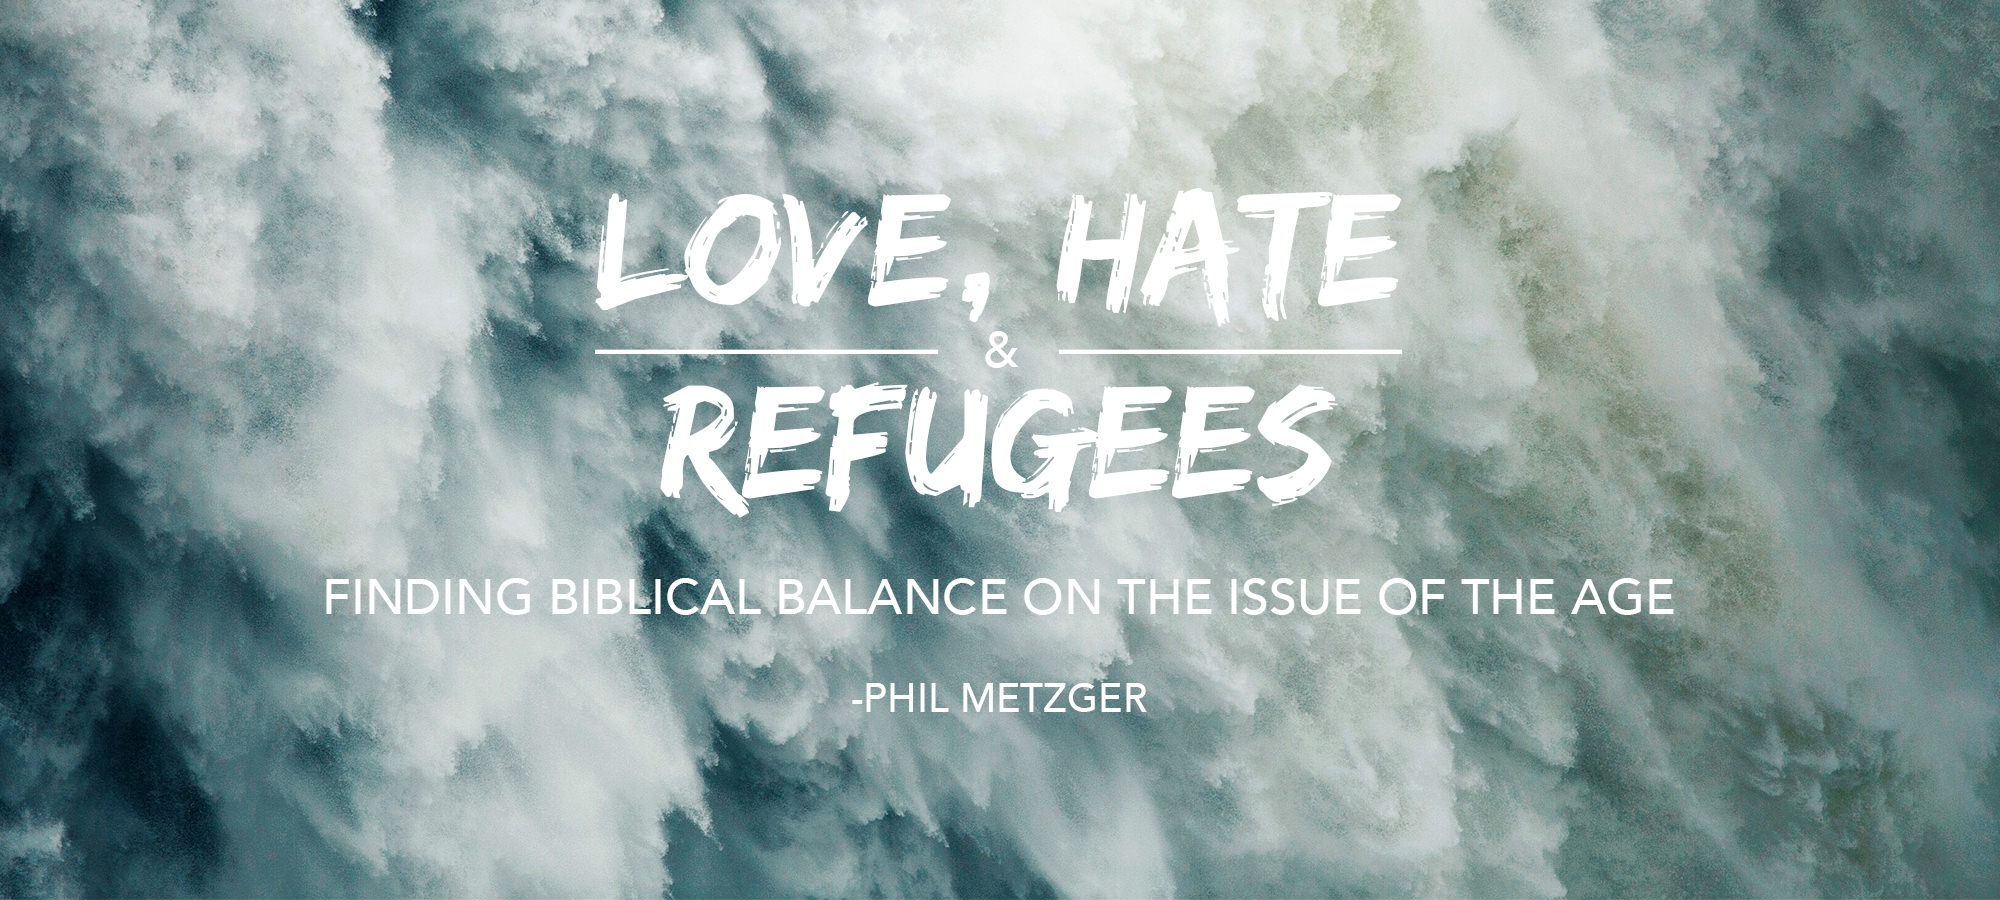 Love, Hate & Refugees - Finding Biblical Balance on the Issue of the Age